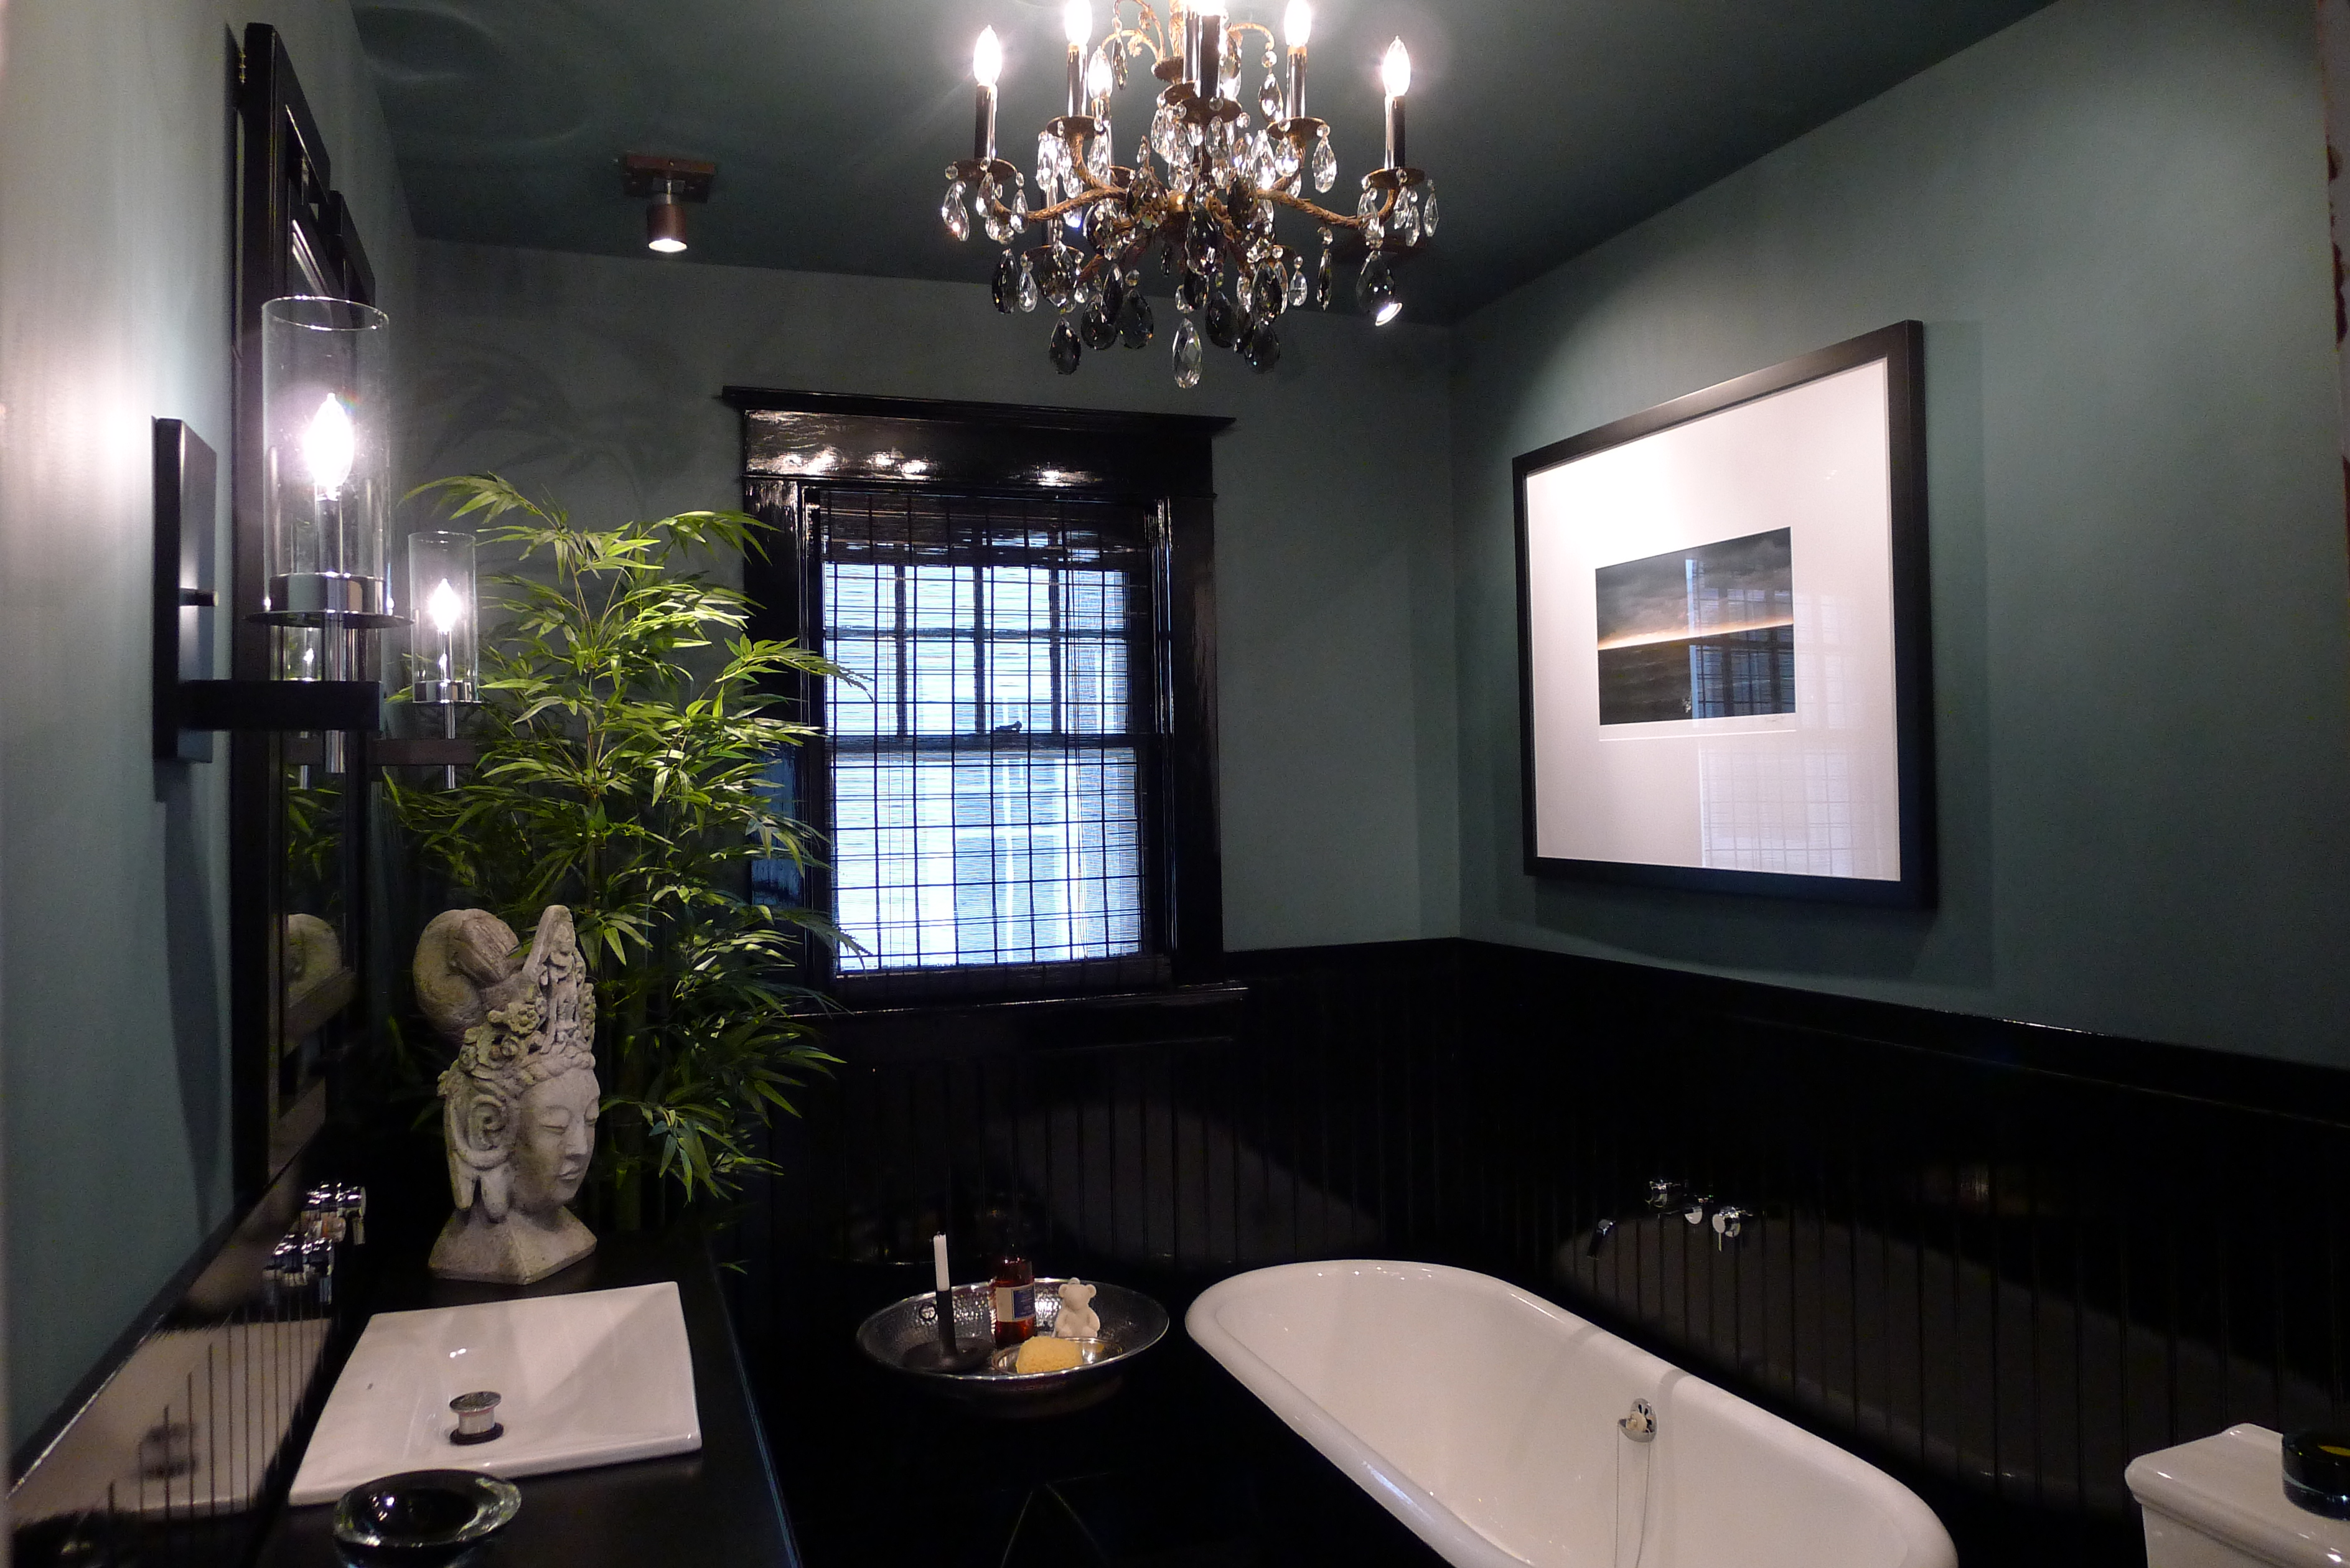 Two fully renovated bathrooms  11014 125 St Edmonton Canada